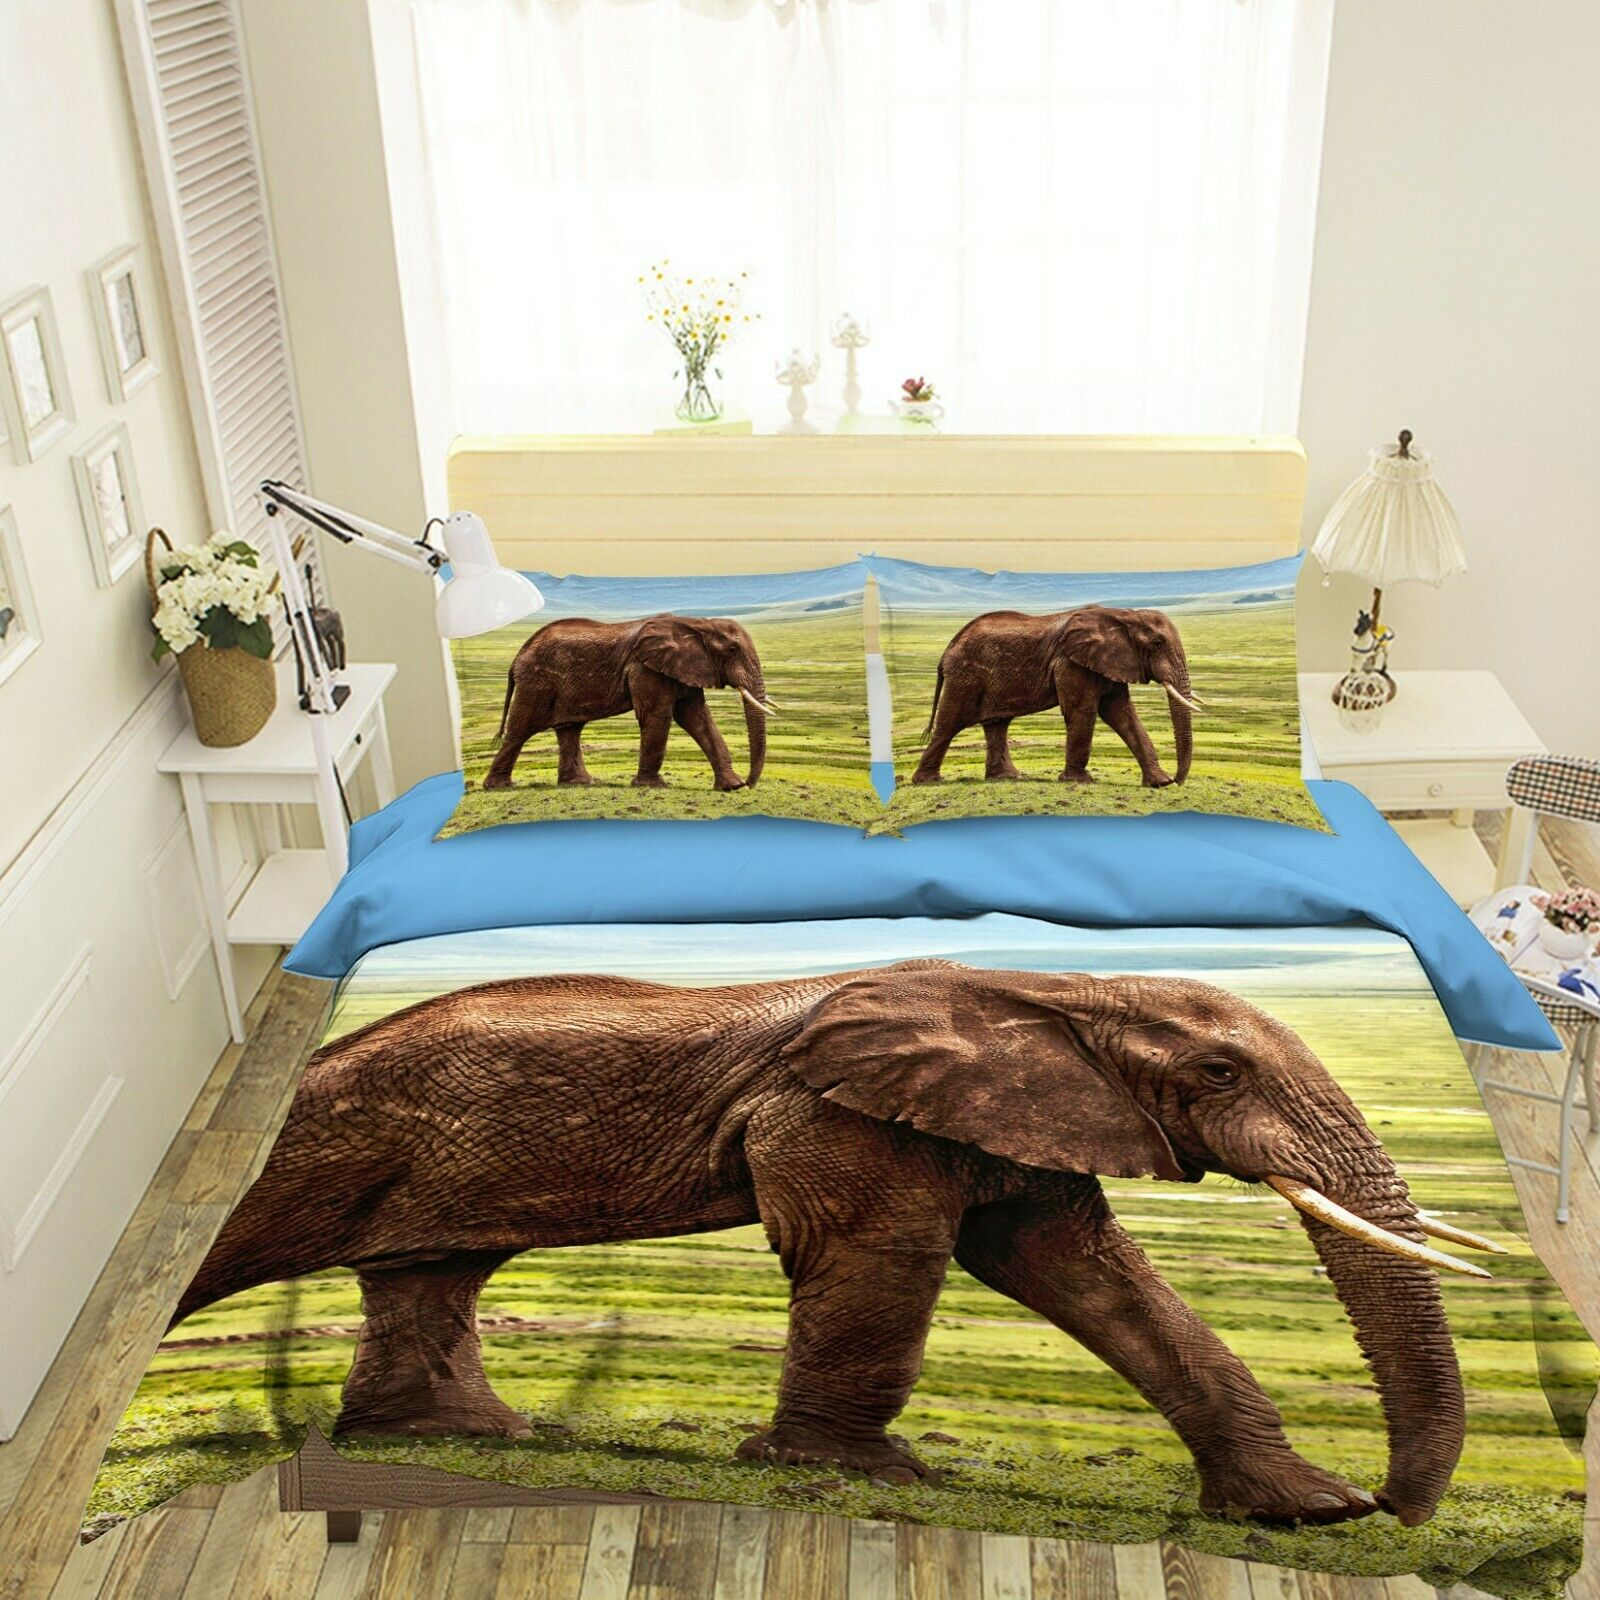 3D Elephant O35 Animal Bed Pillowcases Quilt Duvet Cover Set Queen King Amy